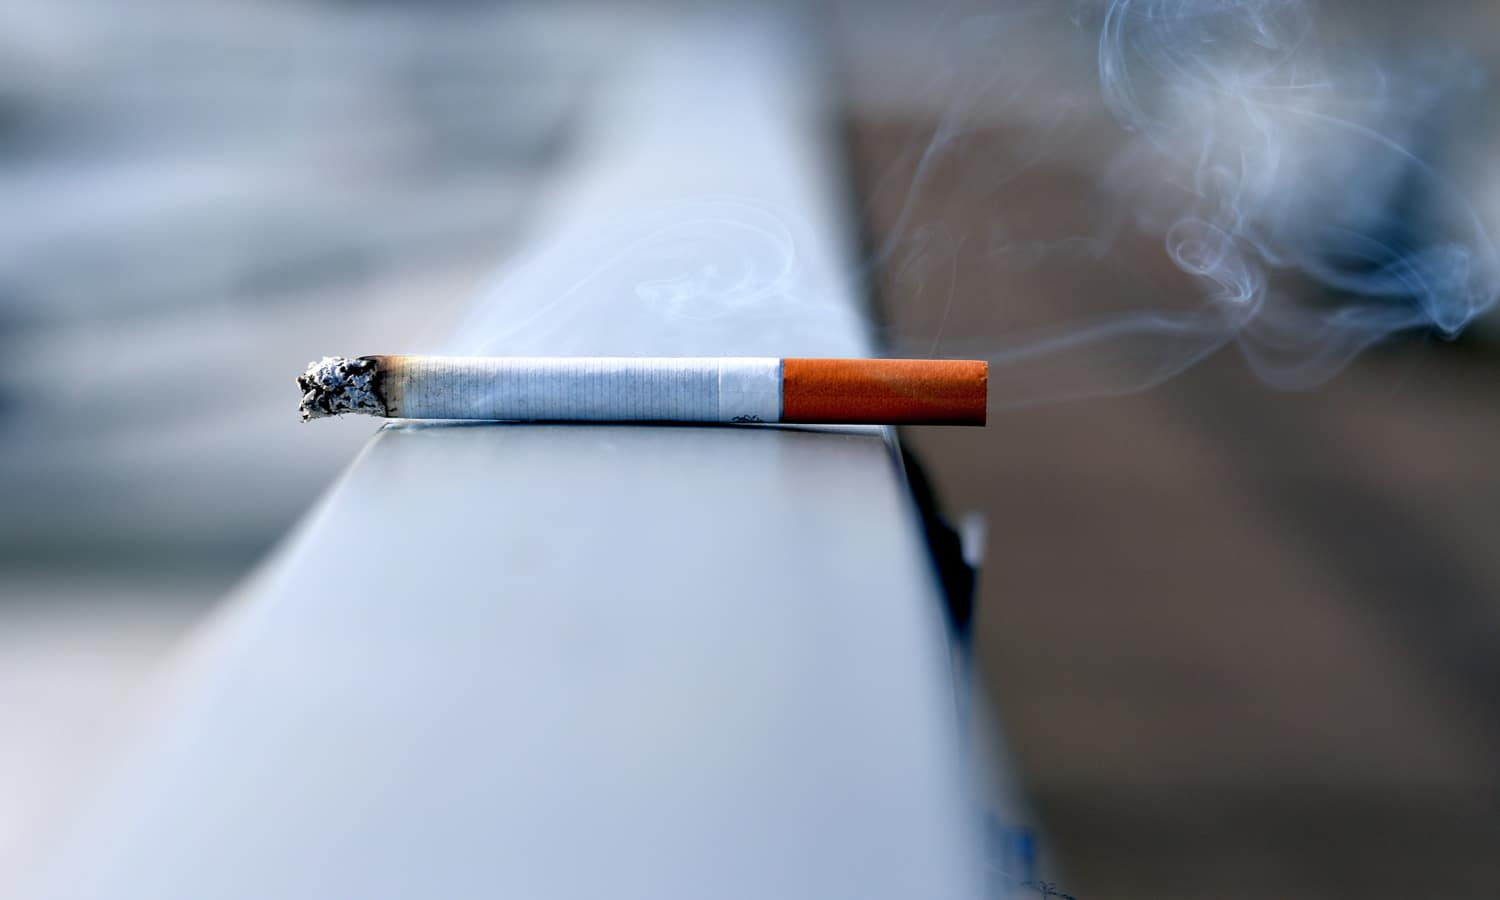 Are Smokers And Vapers More At Risk For Coronavirus?